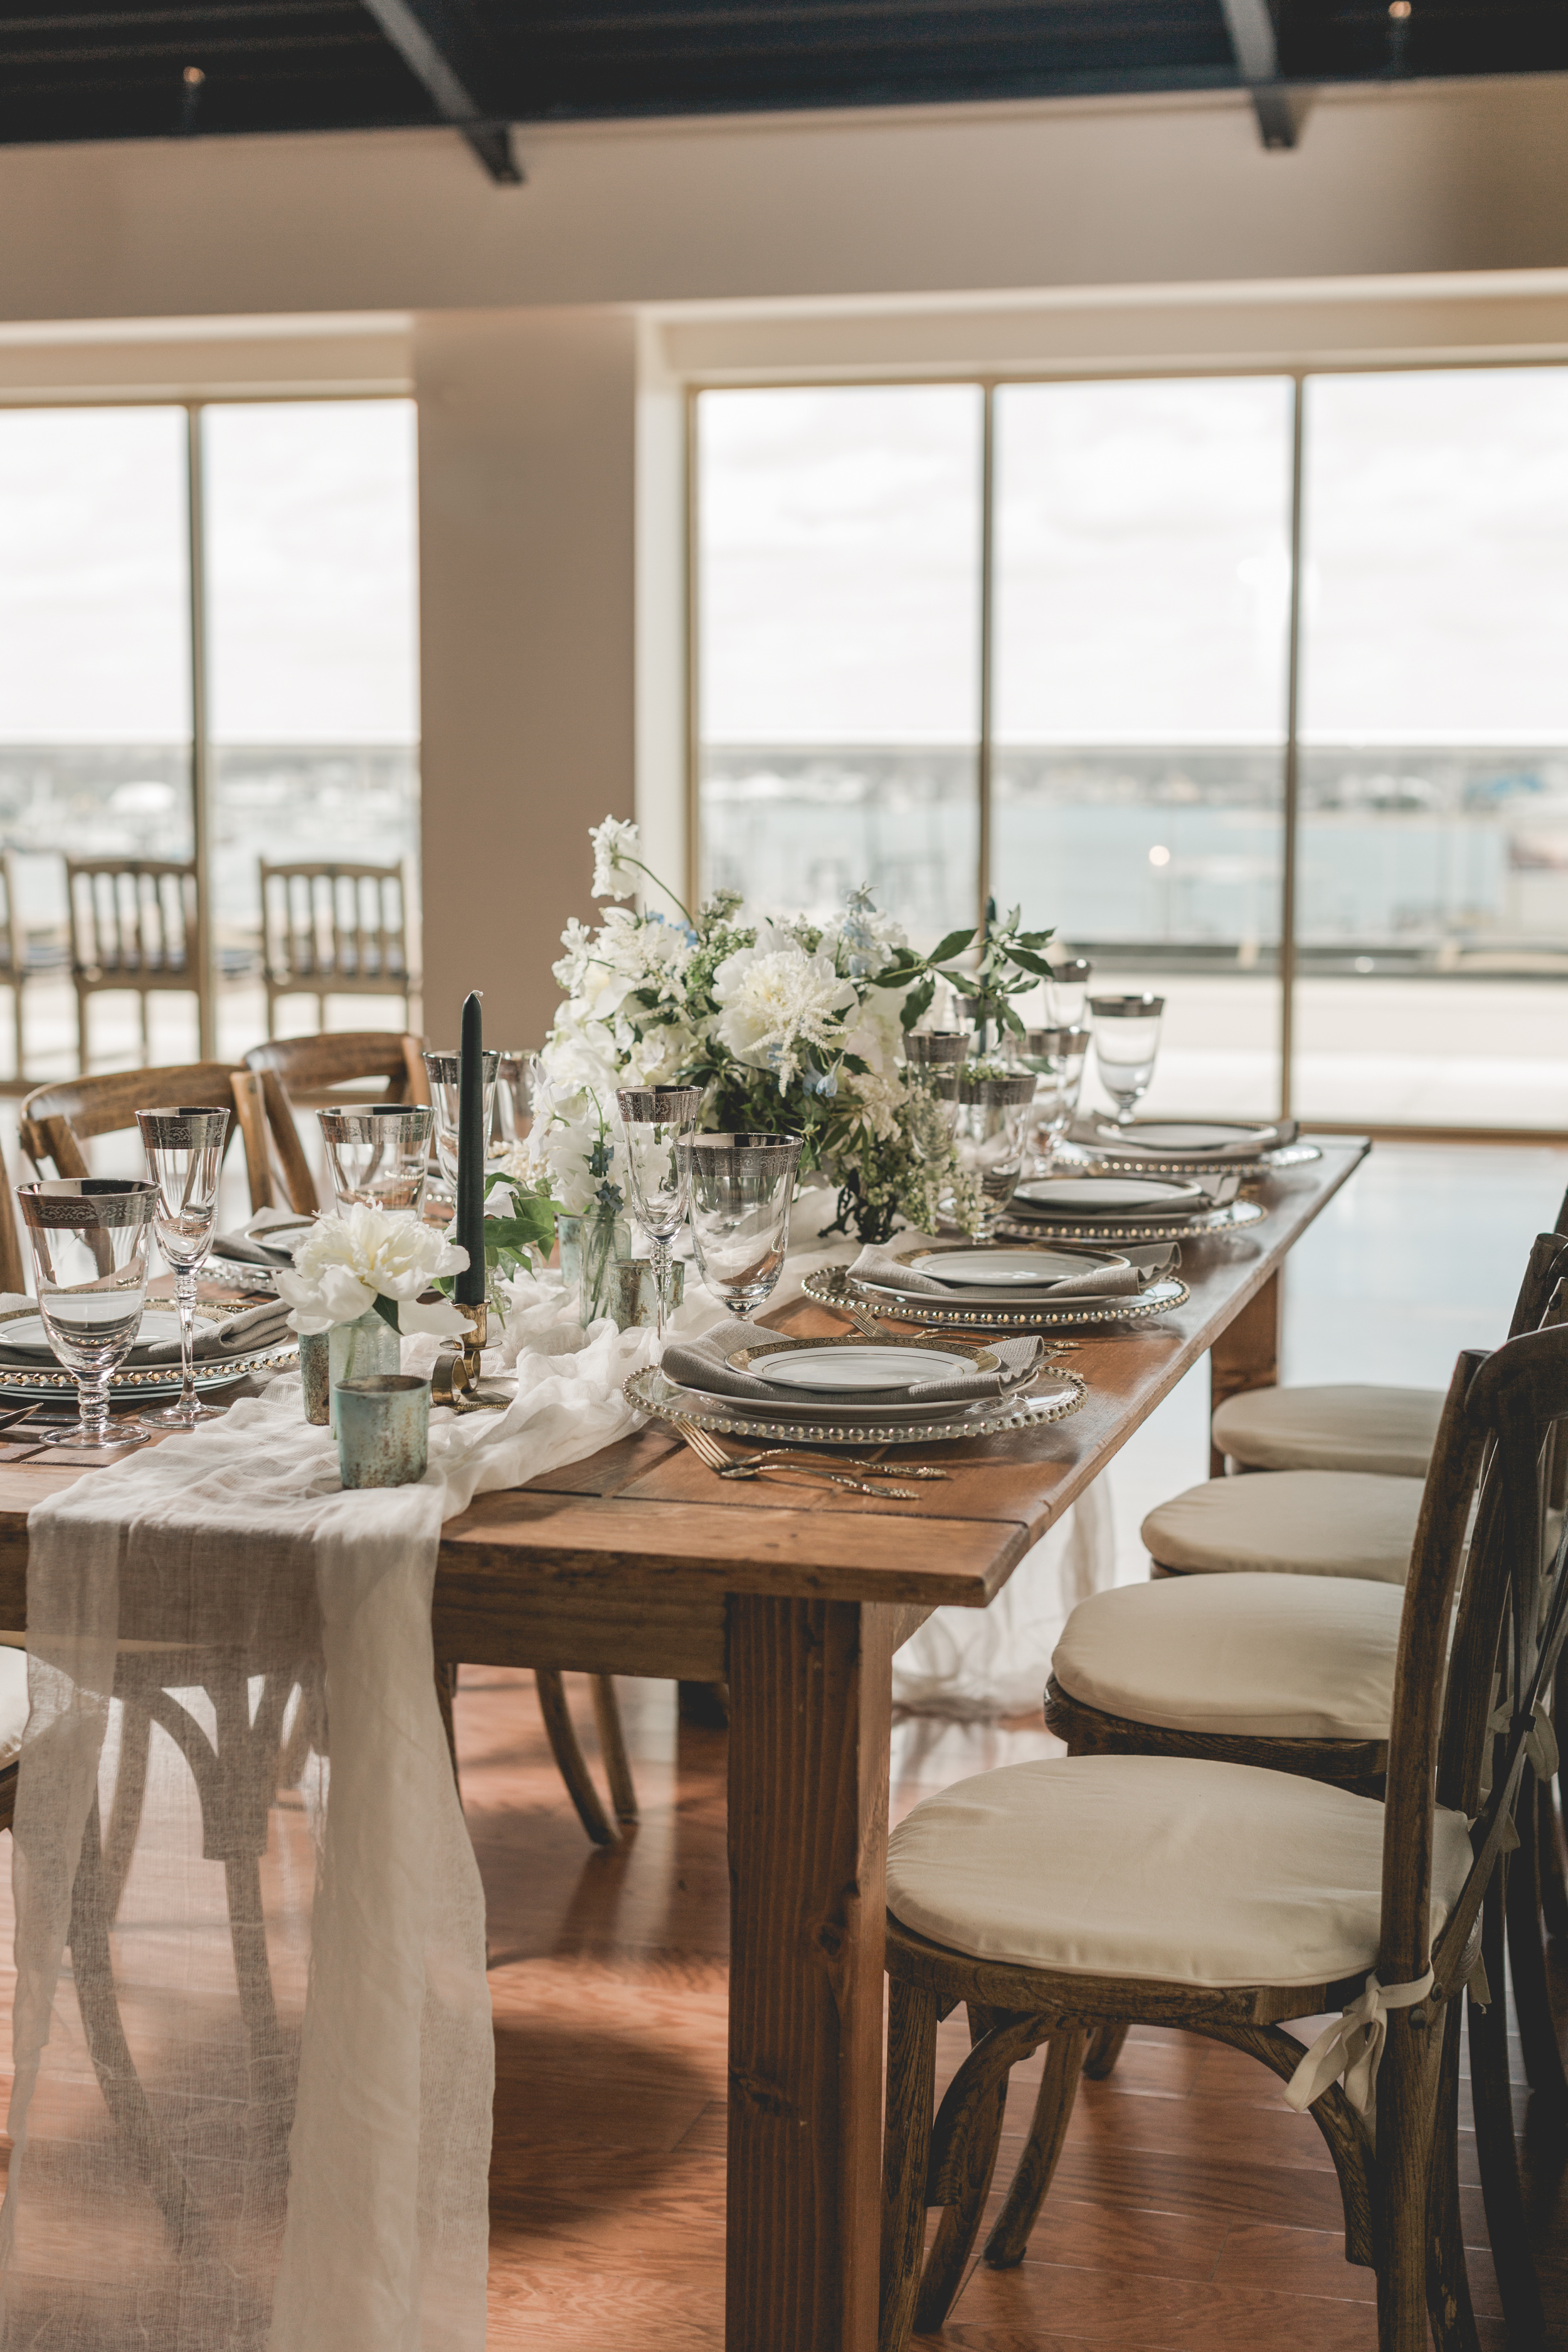 Whaling_Museum_Styled_Shoot_guesttable_4-19-16-31.jpg